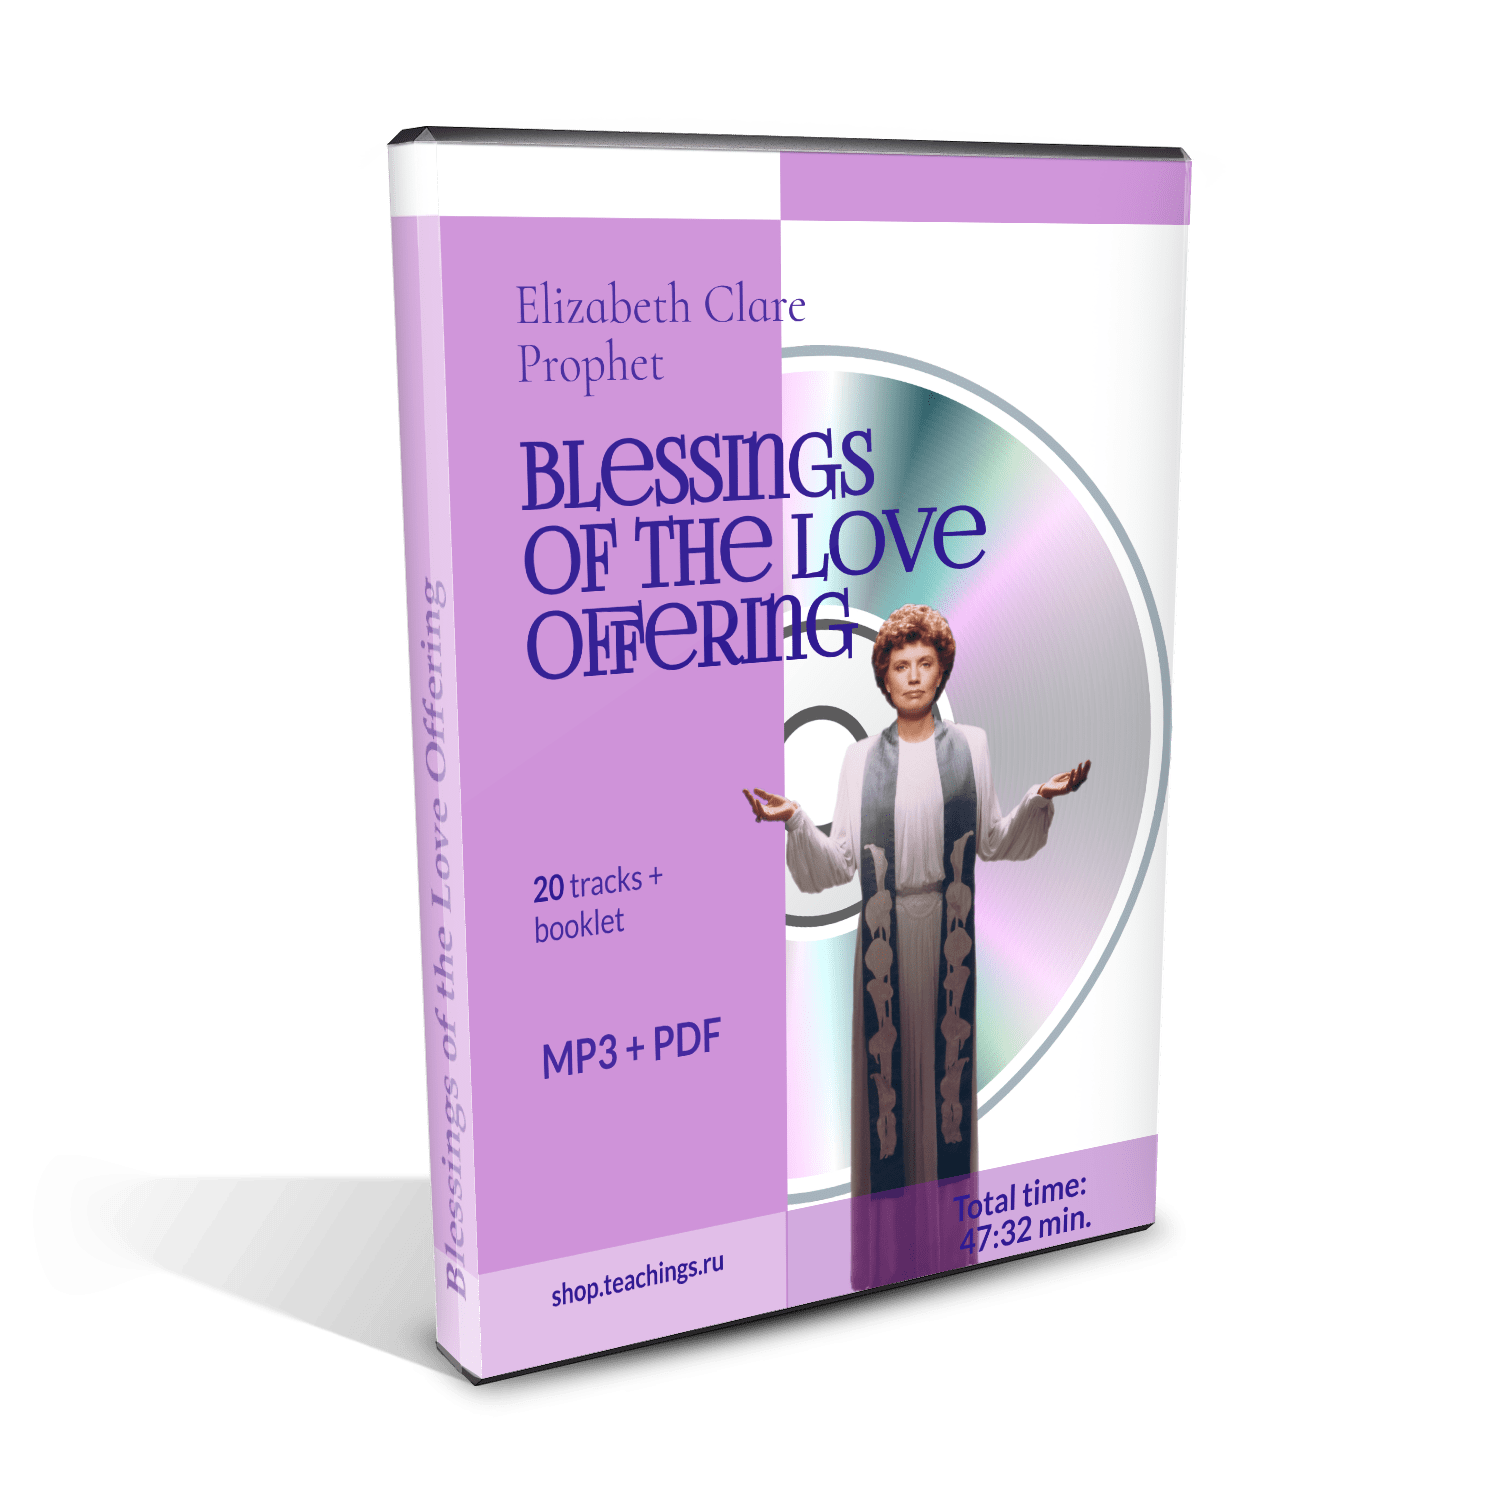 Blessings of the Love Offering